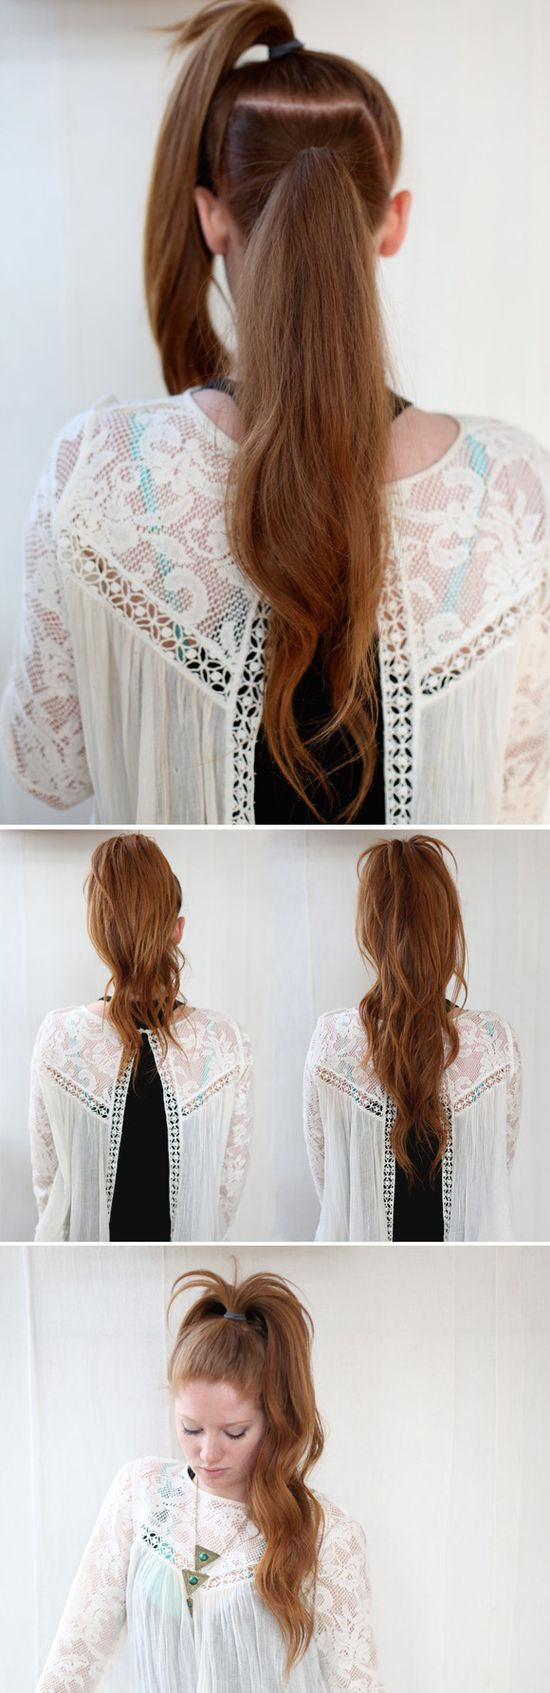 the illusional crazy long mane ponytail #hairstyle #girl hairstyle